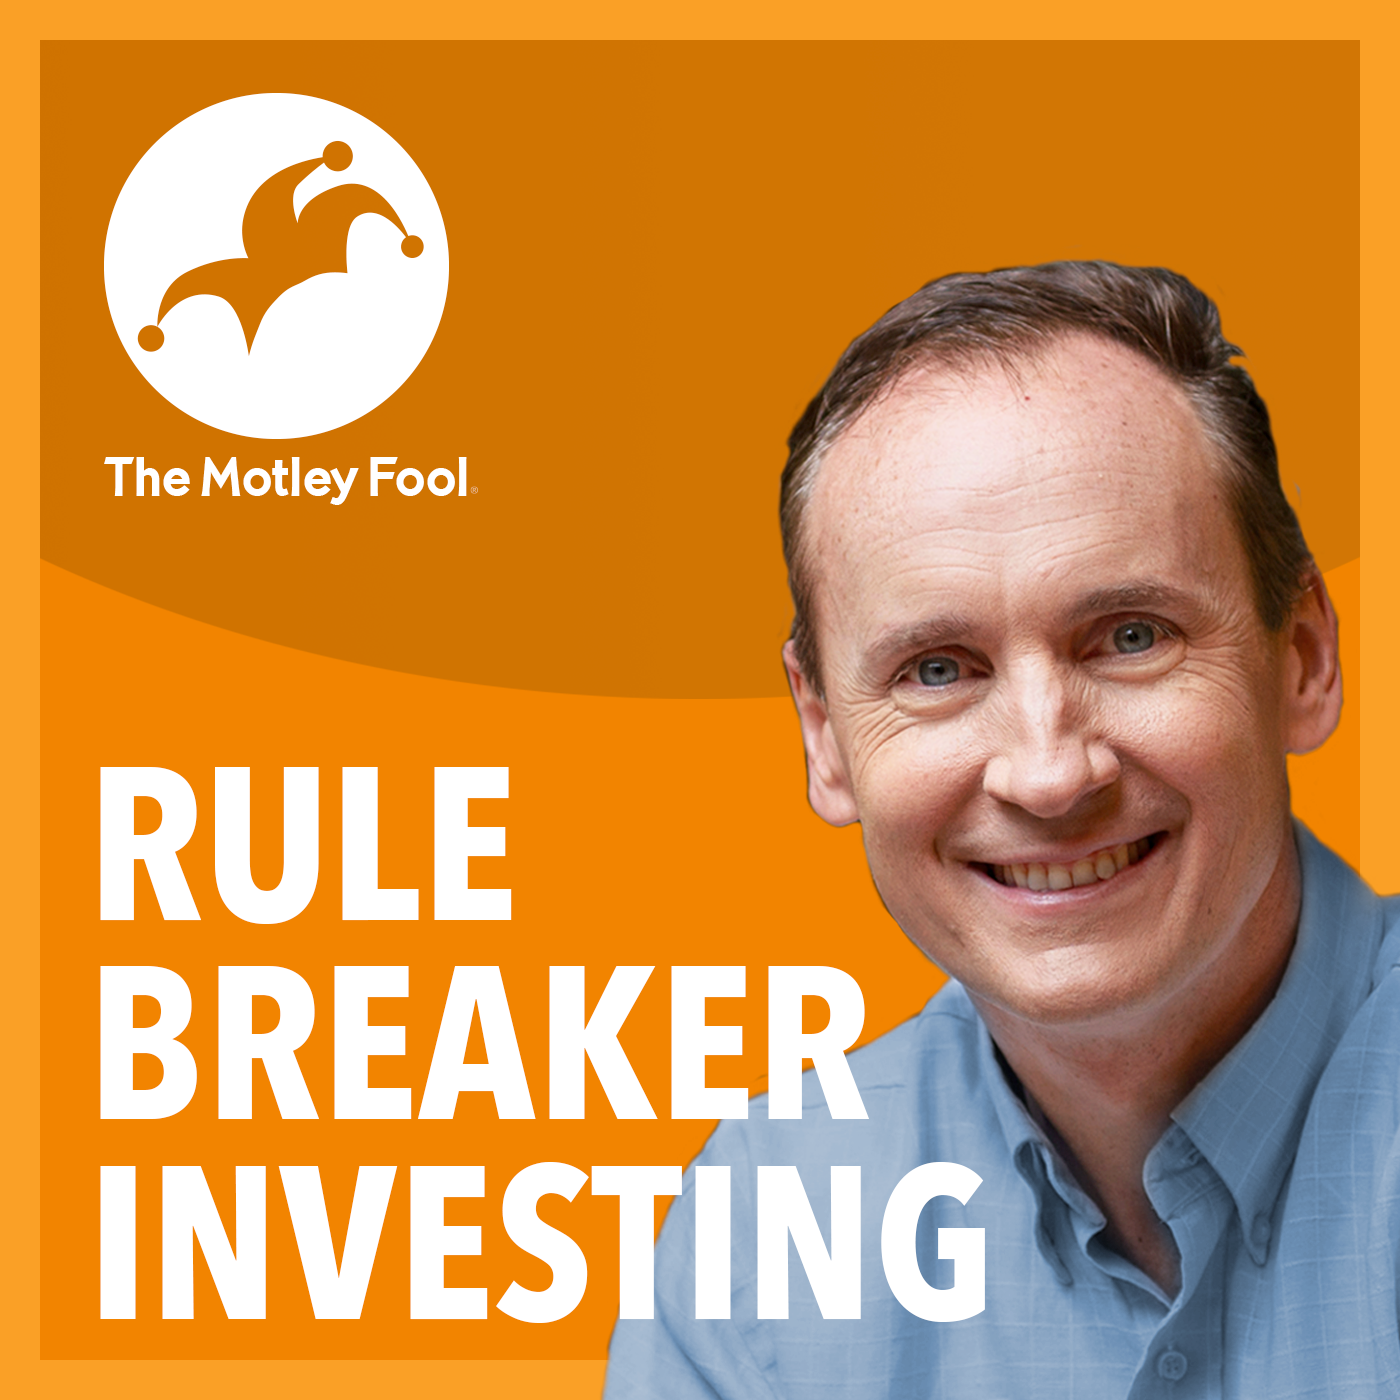 Rule Breaker Investing podcast